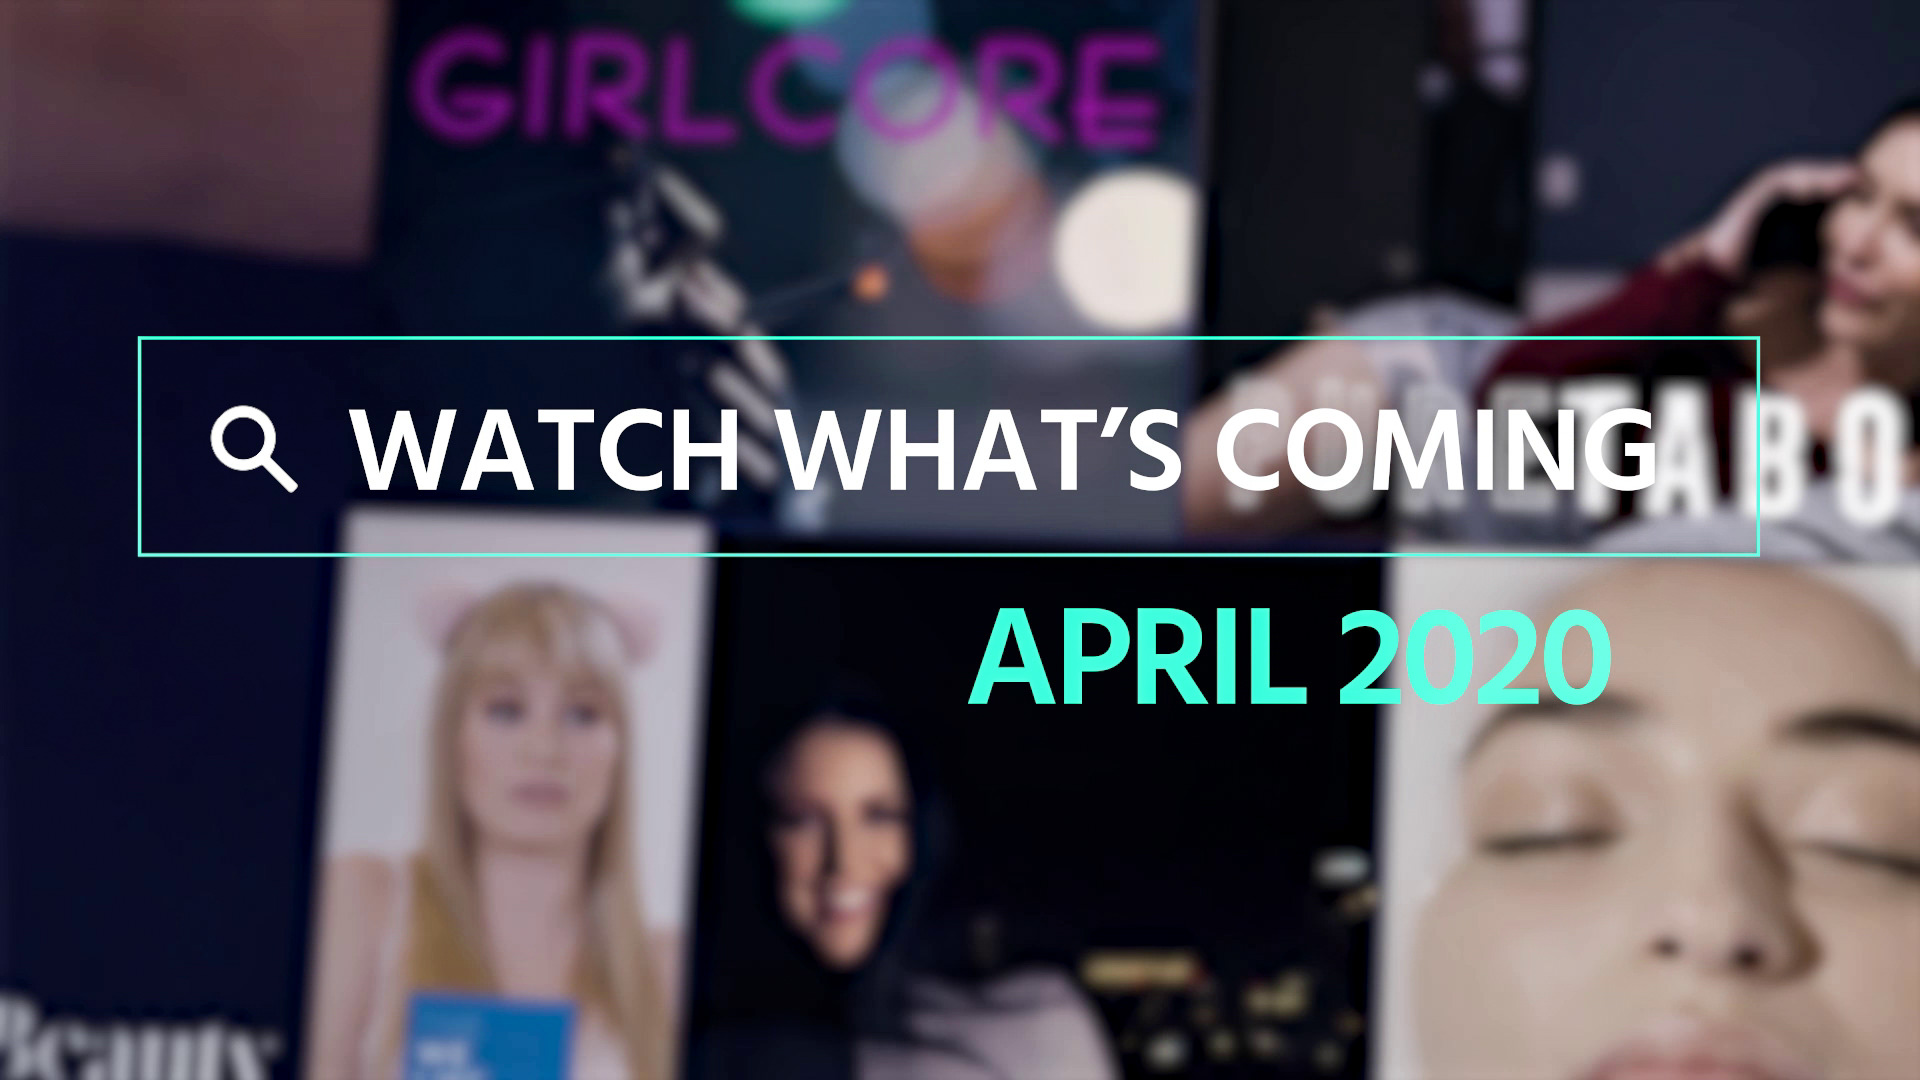 Watch What's Coming | April 2020 1